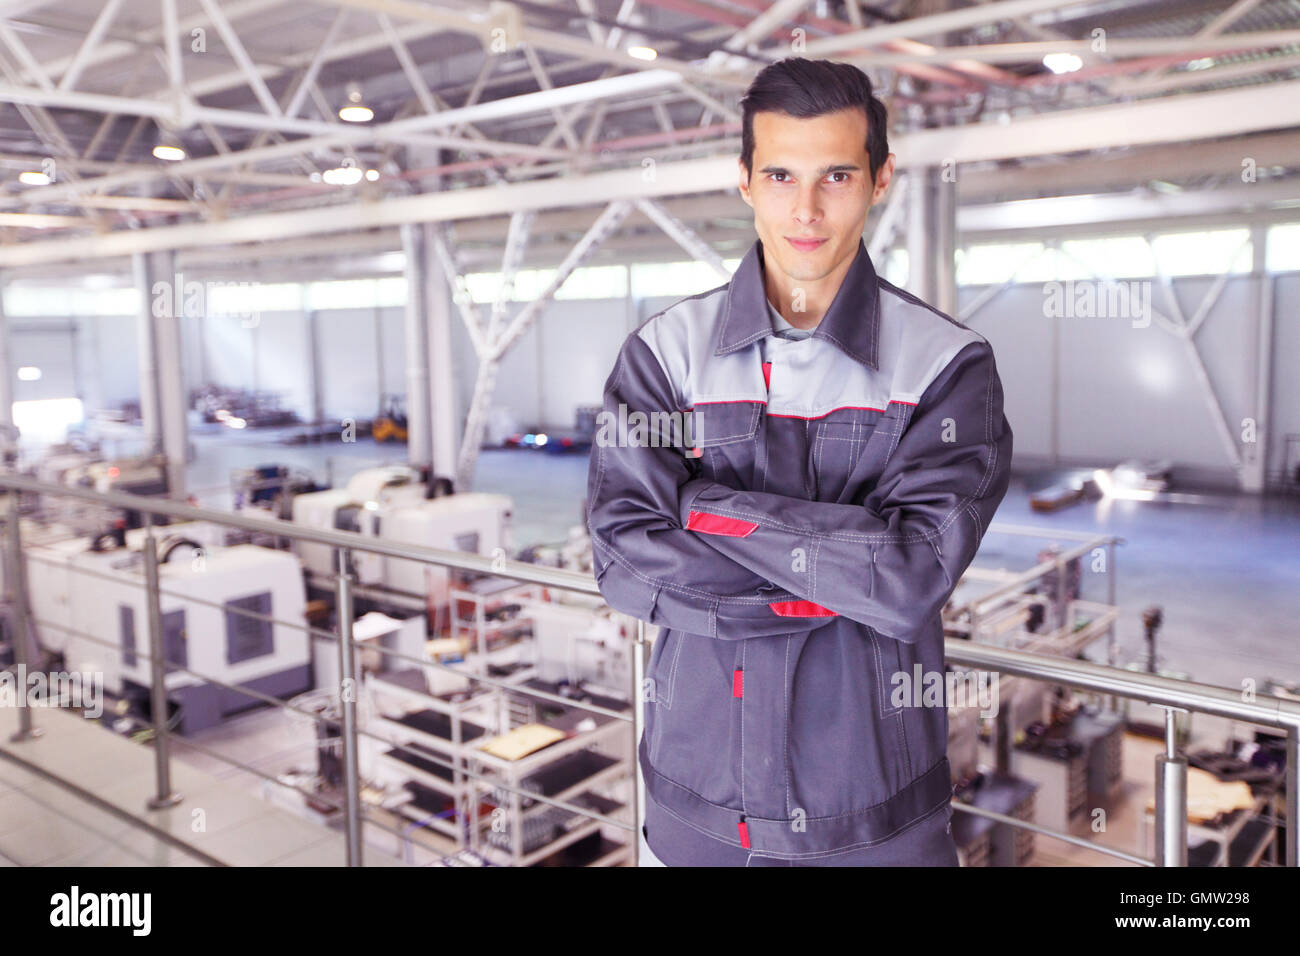 Young worker in uniform standing in CNC factory Stock Photo